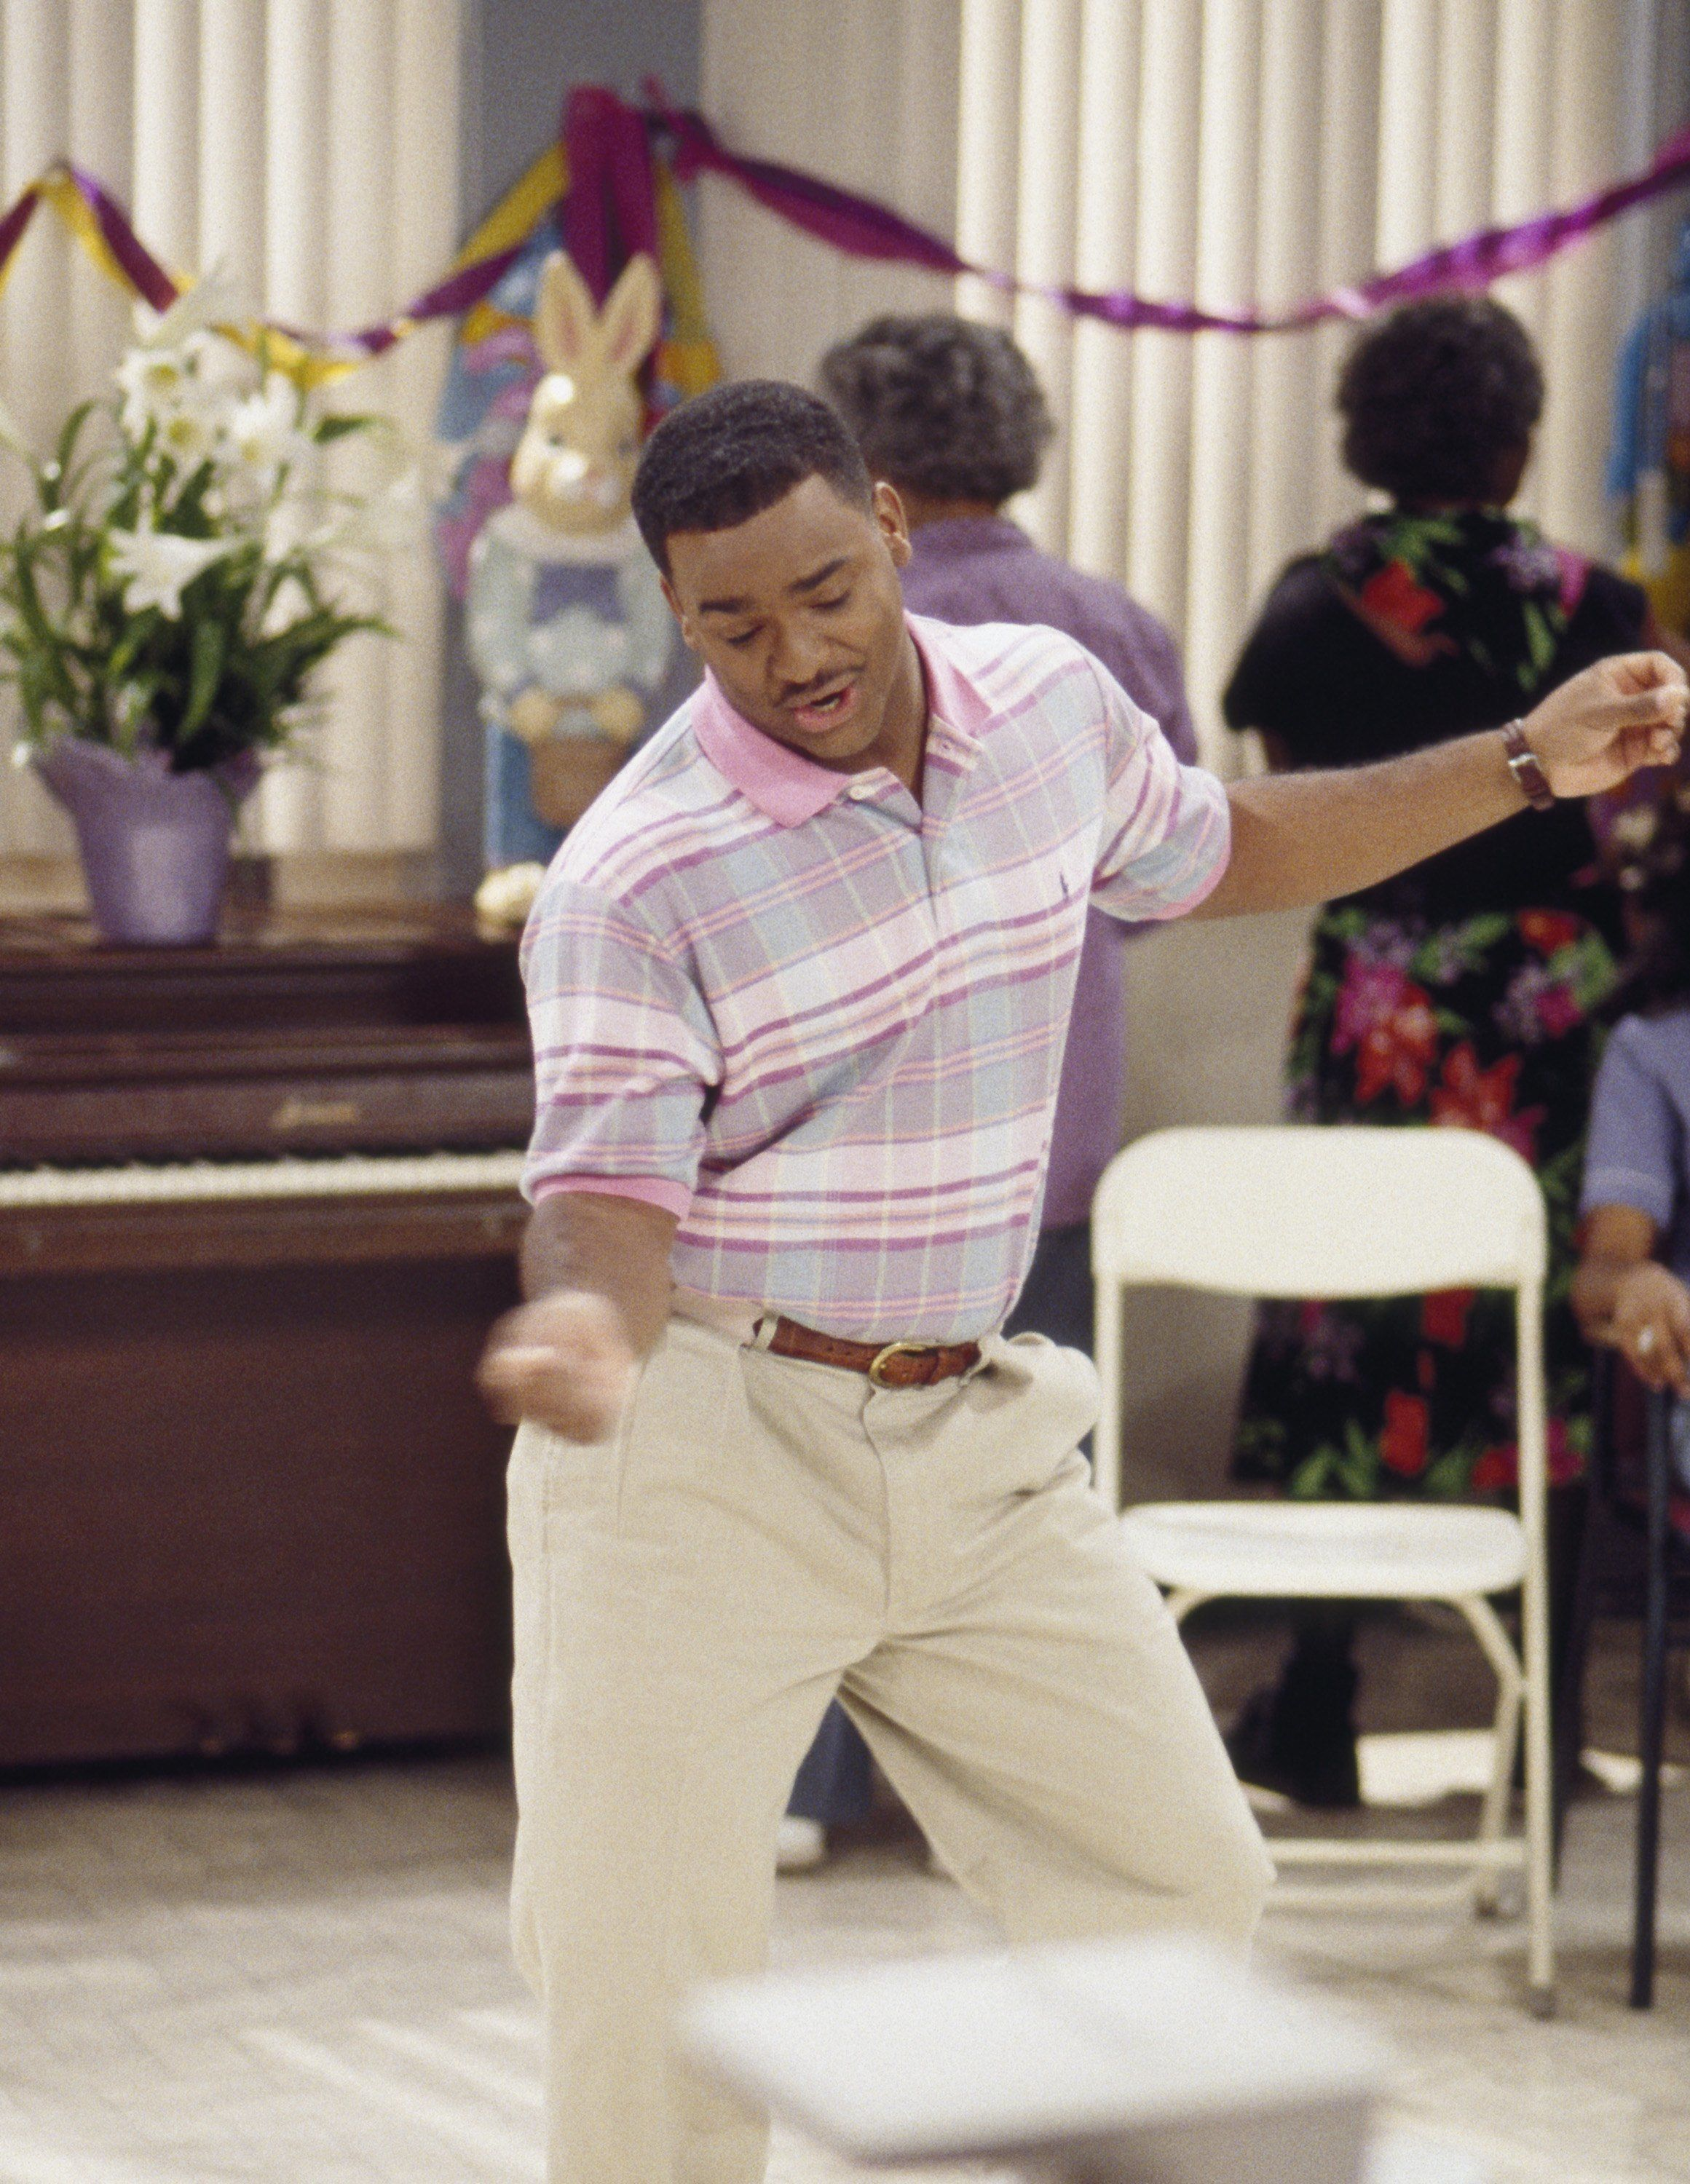 THE FRESH PRINCE OF BEL-AIR -- 'Hare Today' Episode 18 -- Aired 4/8/96 -- Pictured: Alfonso Ribeiro as Carlton Banks -- Photo by: Chris Haston/NBCU Photo Bank